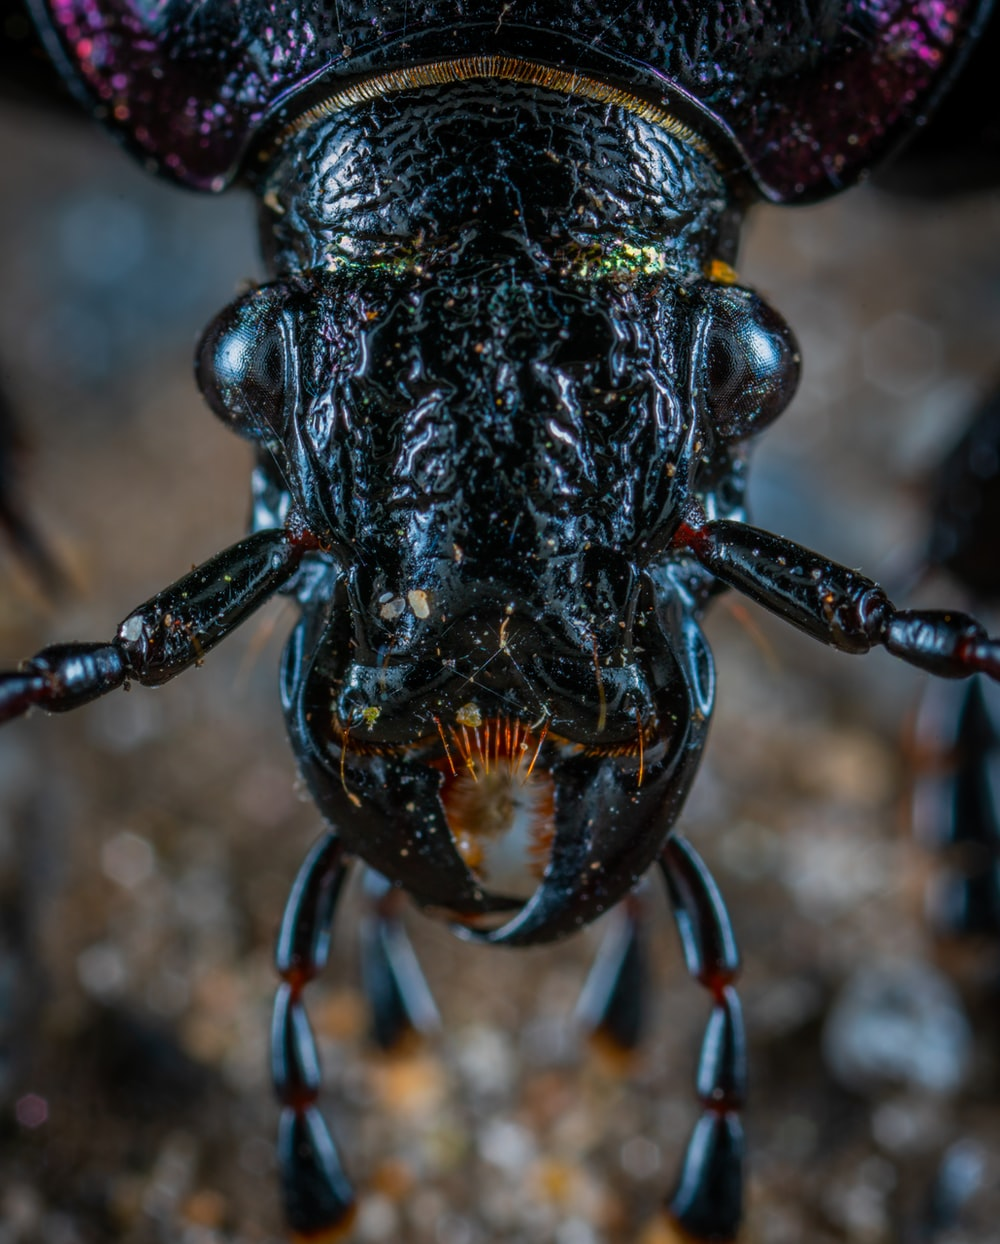 macro photography of insect head